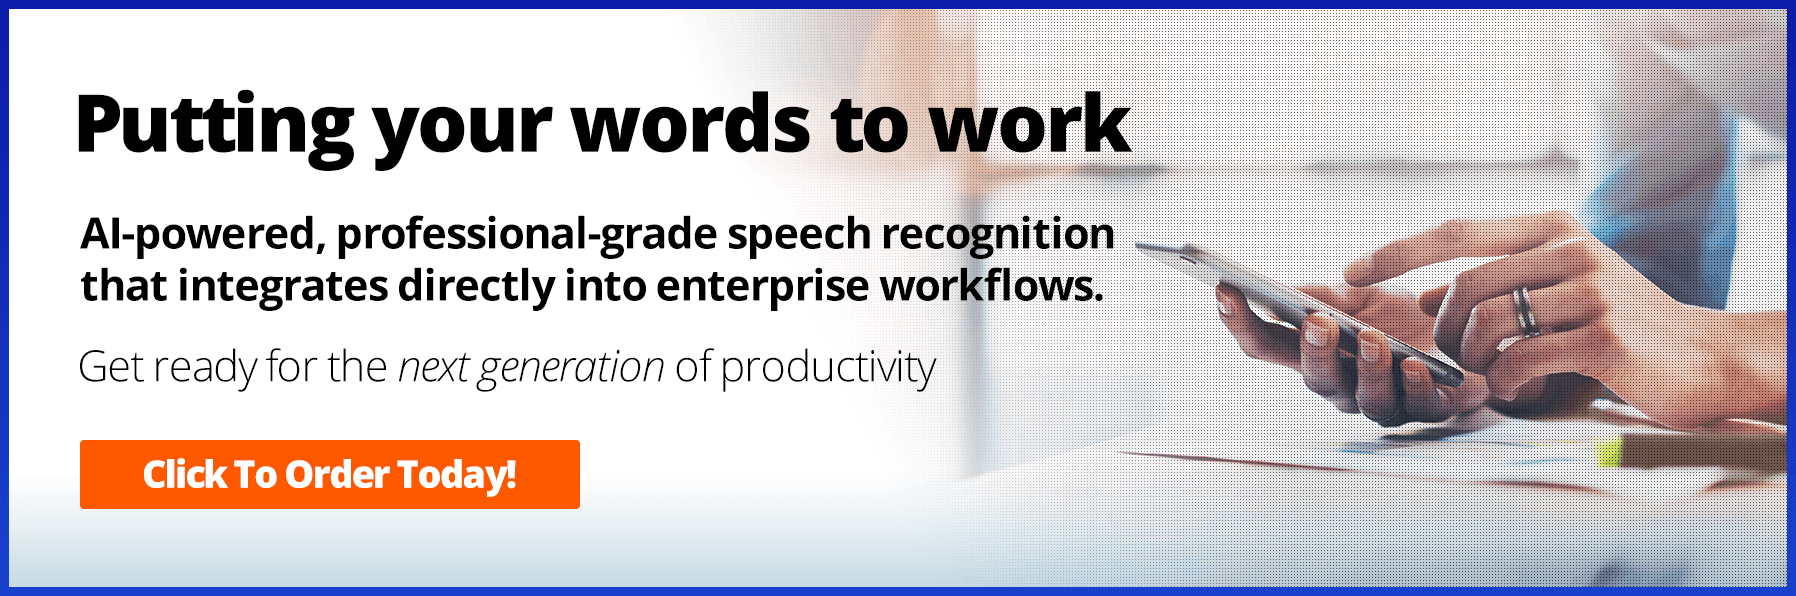 Putting your words to work. AI-powered professional-grade speech recognitionthat integrates directly into enterprise workflows. Get ready for the next generation of productivity.